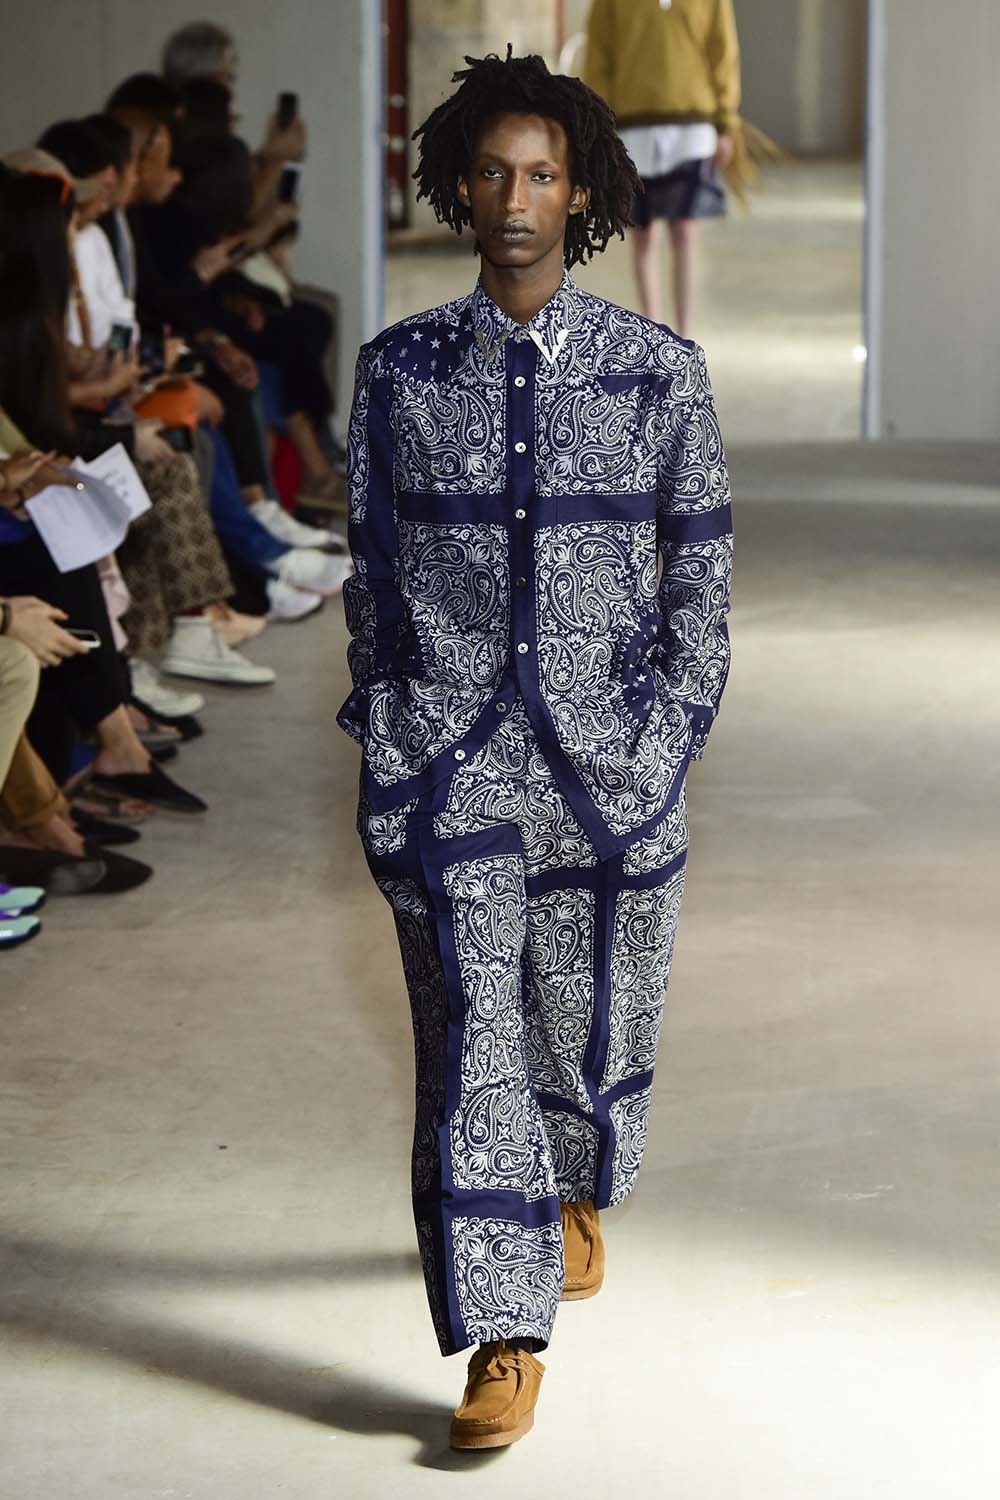 Etudes Paris Fashion Week Men's SS19 - Sagaboi - Look 1